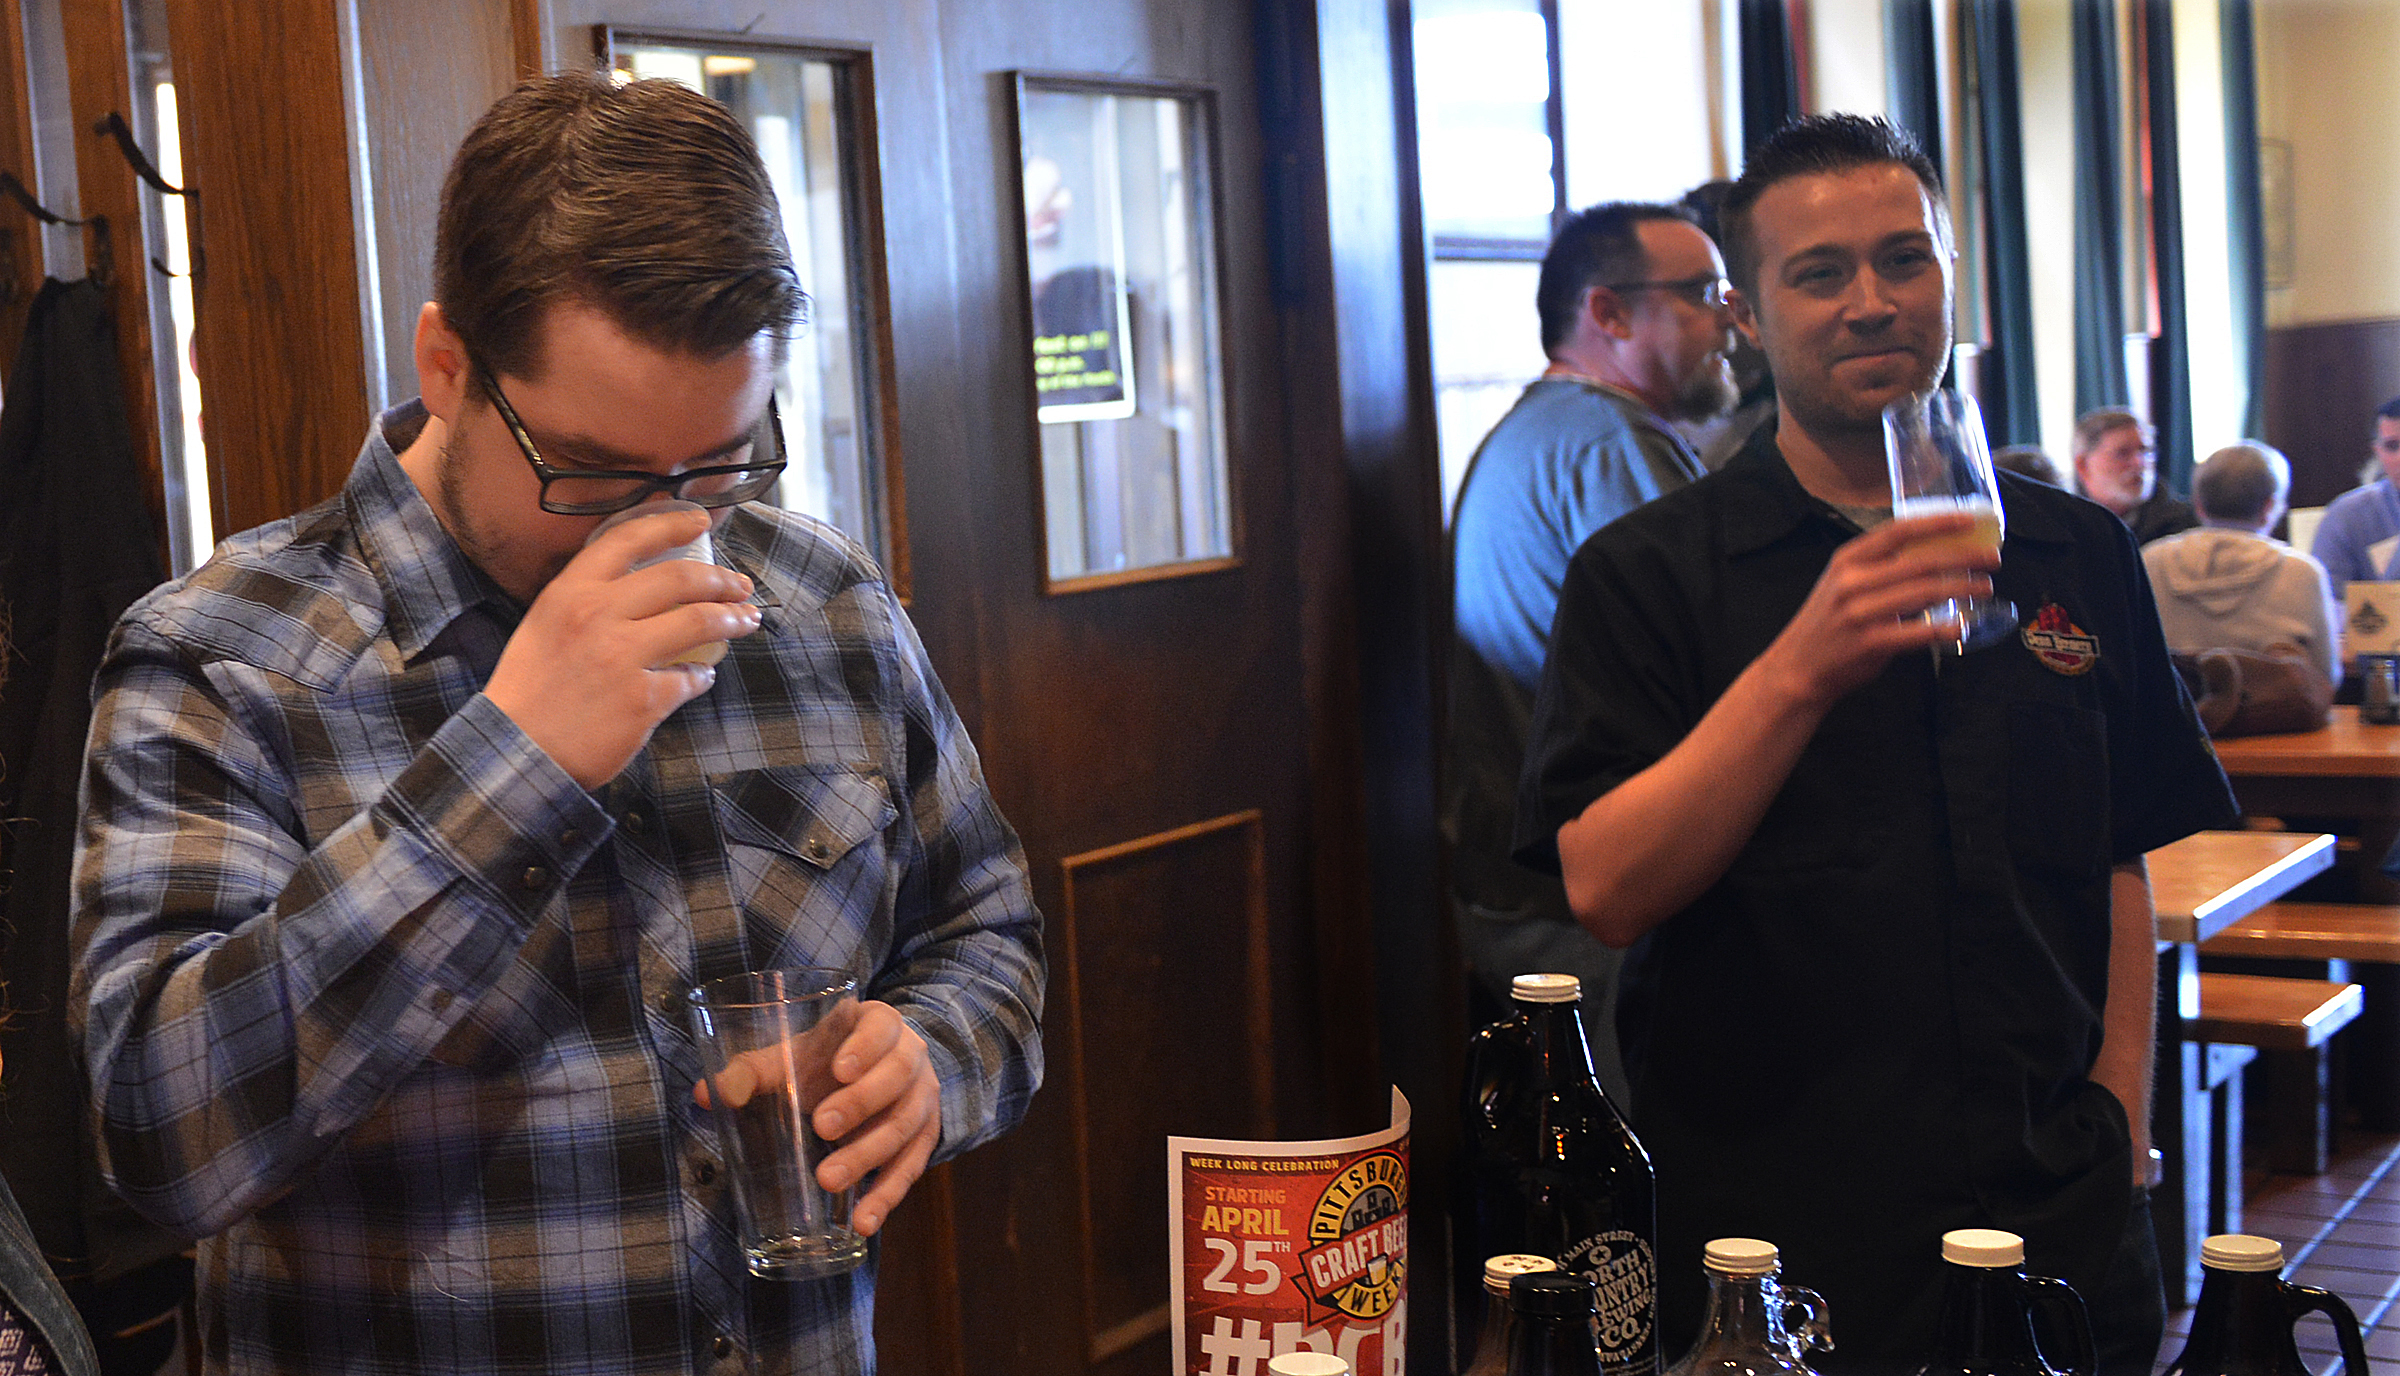 20140416lrcraftbeerlocal08-4 Andy Kwiatkowski, head brewer at Hitchhiker Brewing Co. of Mt. Lebanon, inhales deeply as he tries a small glass of a collaborative brew made by East End Brewing Company and Lavery Brewery Co. , of Erie.